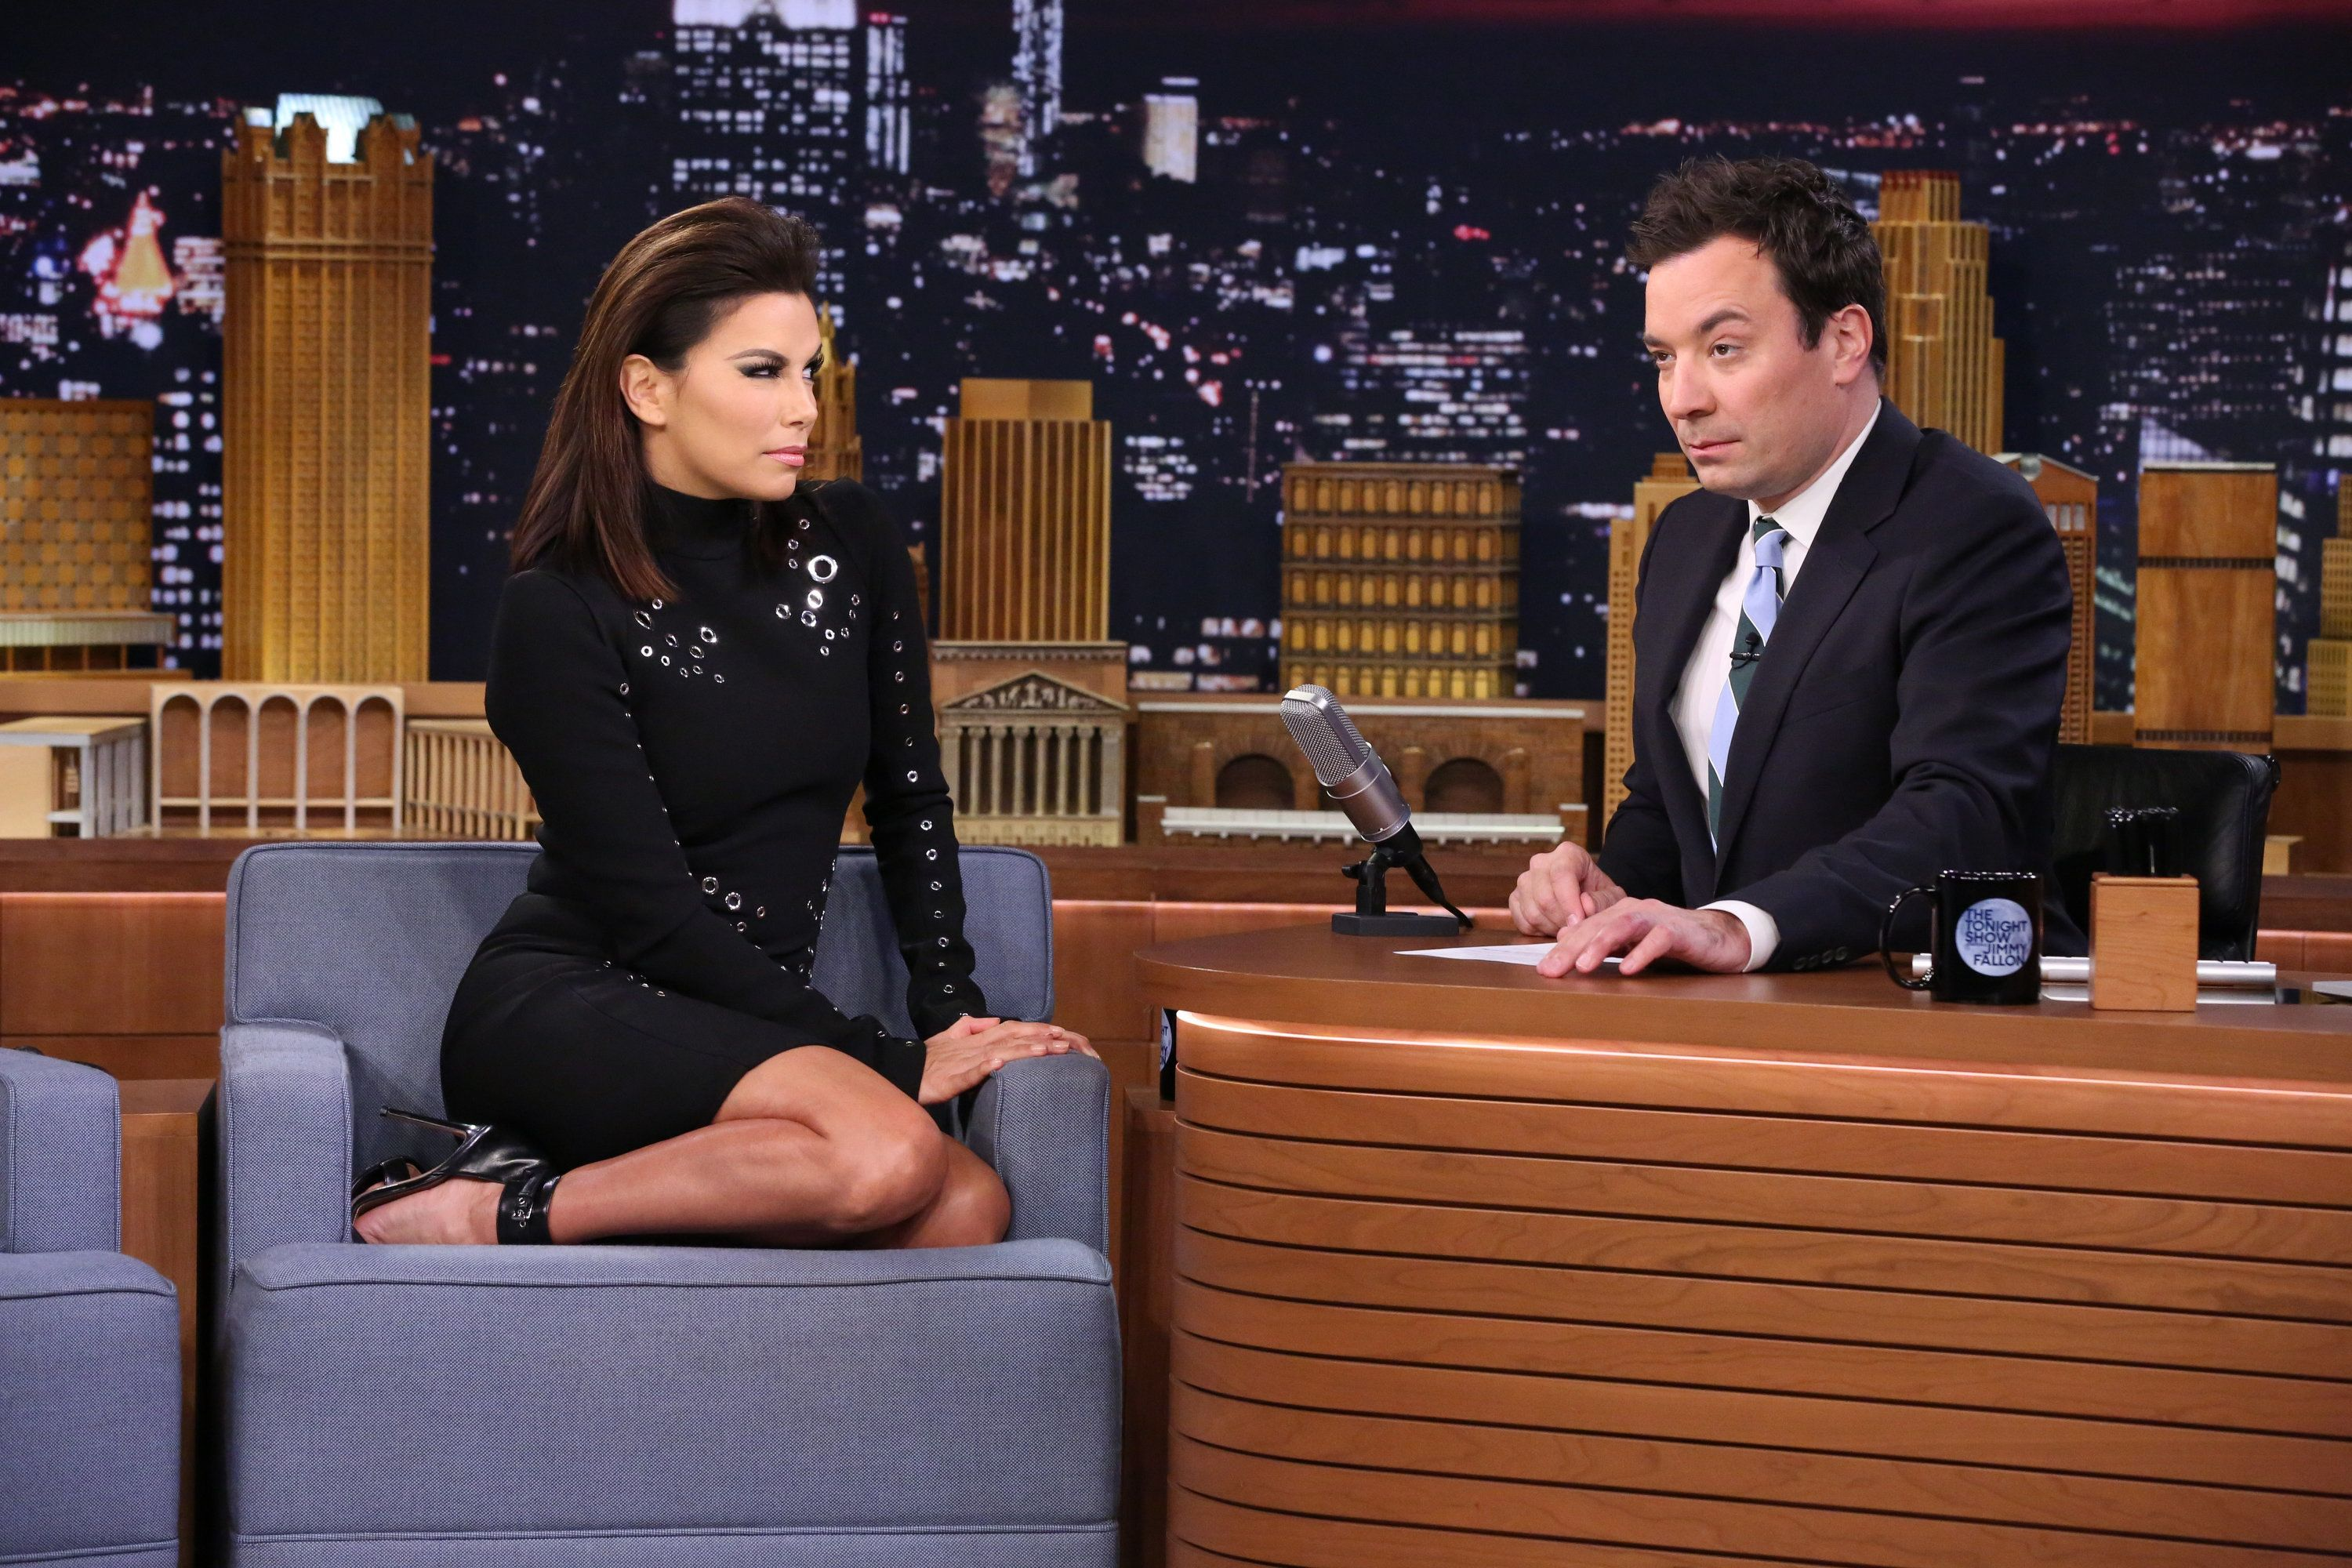 THE TONIGHT SHOW STARRING JIMMY FALLON -- Episode 0381 -- Pictured: (l-r) Actress Eva Longoria during an interview with host Jimmy Fallon on December 4, 2015 -- (Photo by: Douglas Gorenstein/NBC/NBCU Photo Bank via Getty Images)